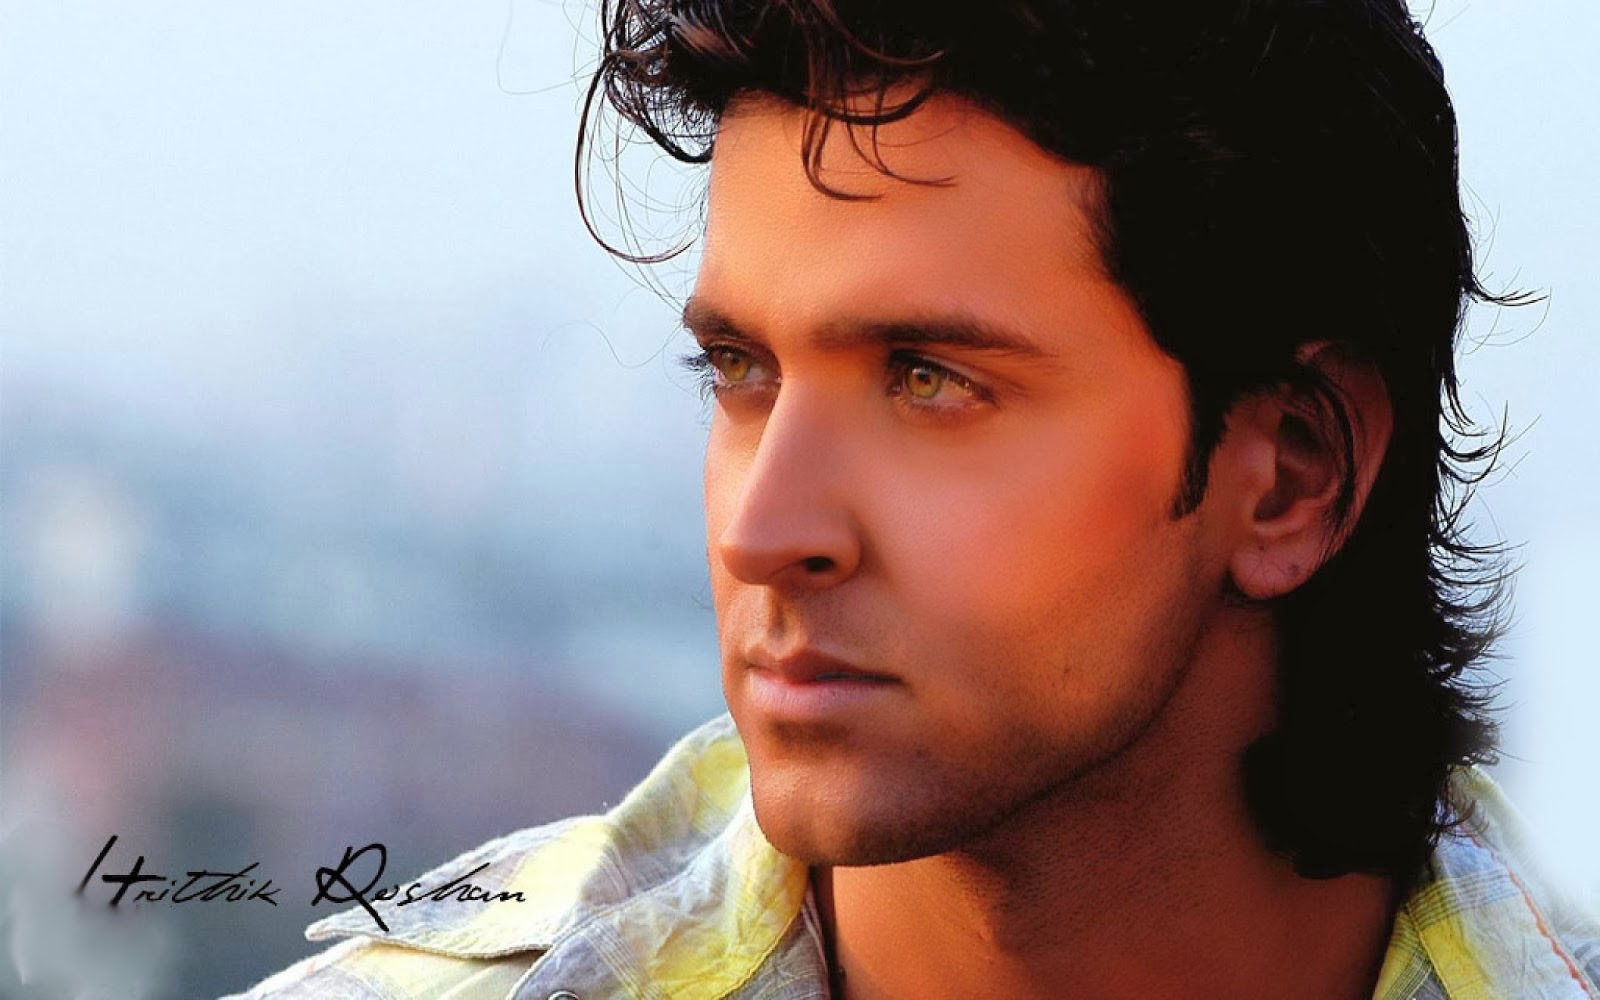 hrithik roshan wallpapers